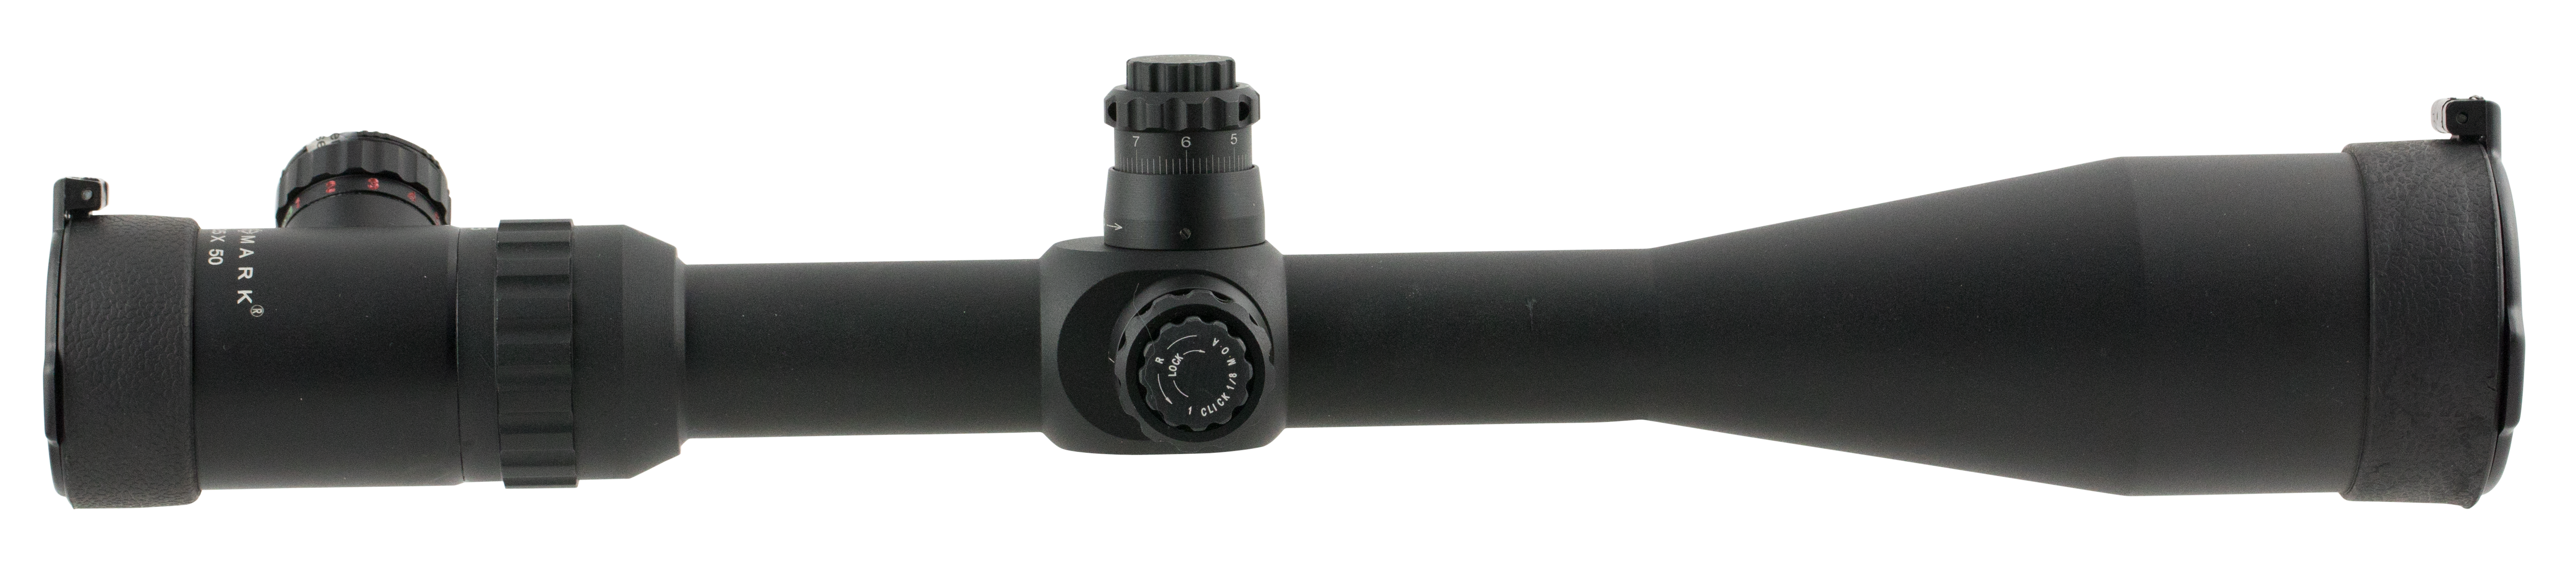 Sightmark SM13011 Triple Duty 8.5-25x 50mm Obj 14.66-4.97 ft @ 100 Yds FOV 30mm Tube Black Mil-Dot